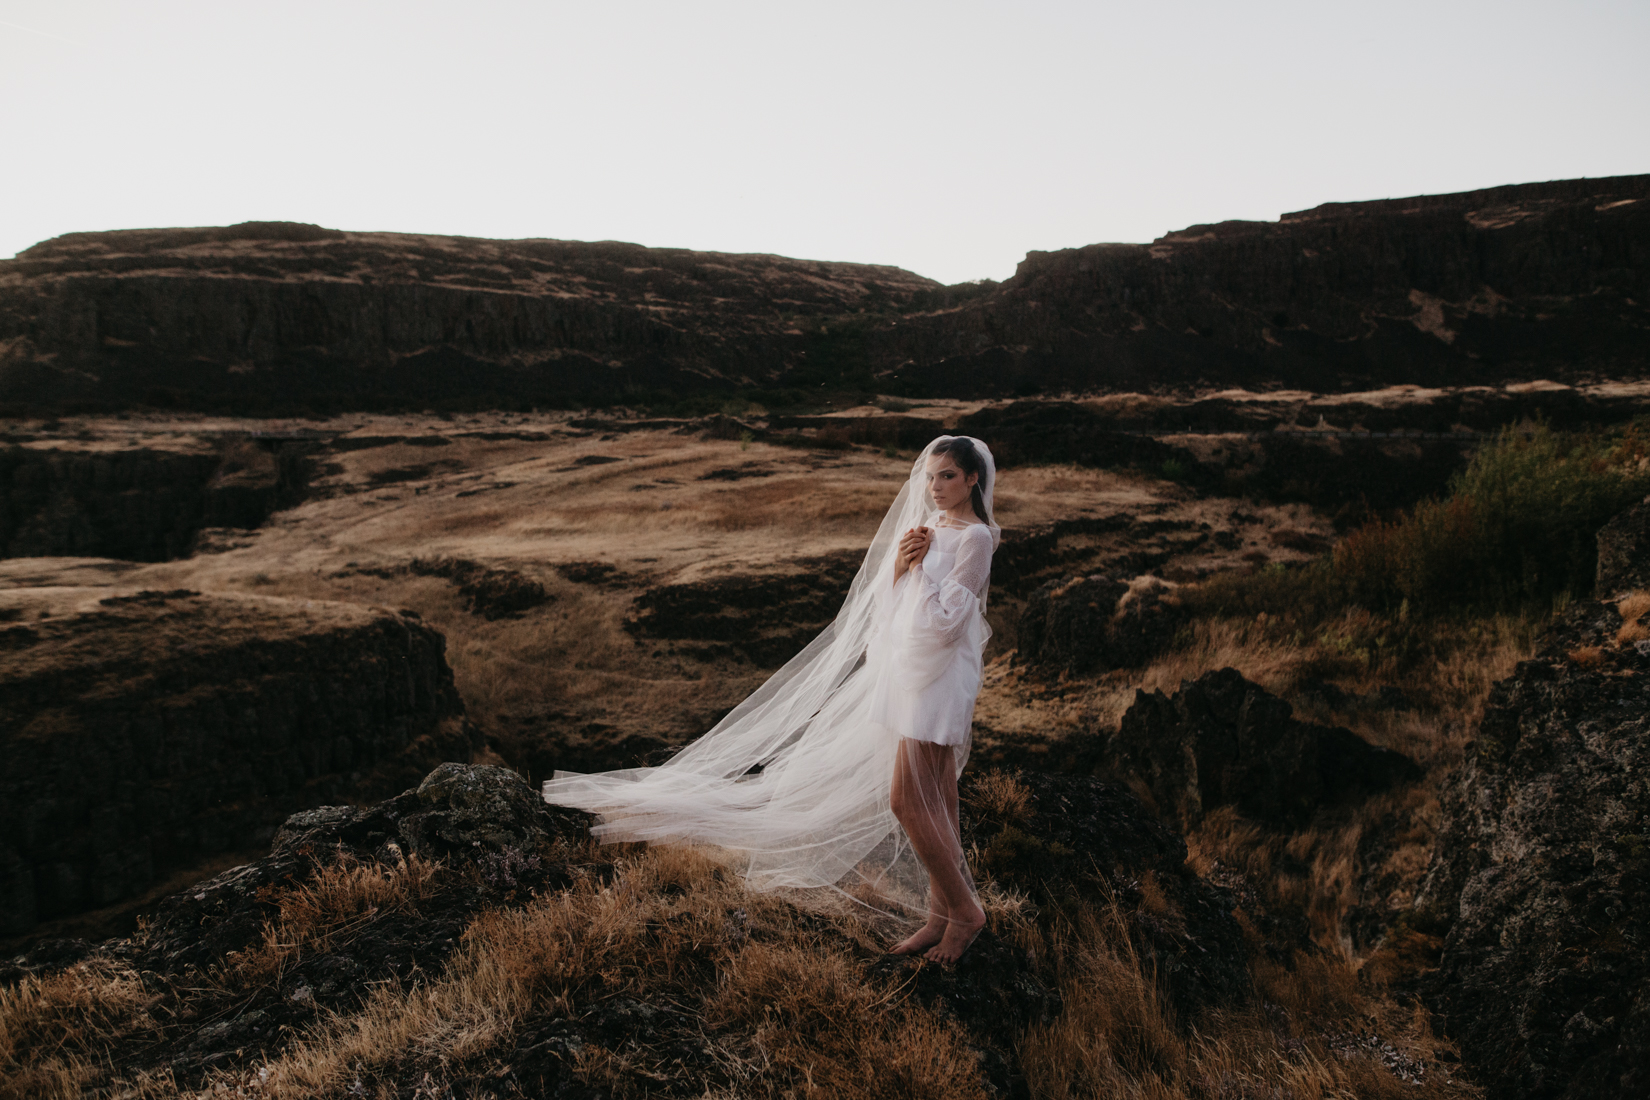 Bride wearing white wedding dress and veil in the hills of Oregon